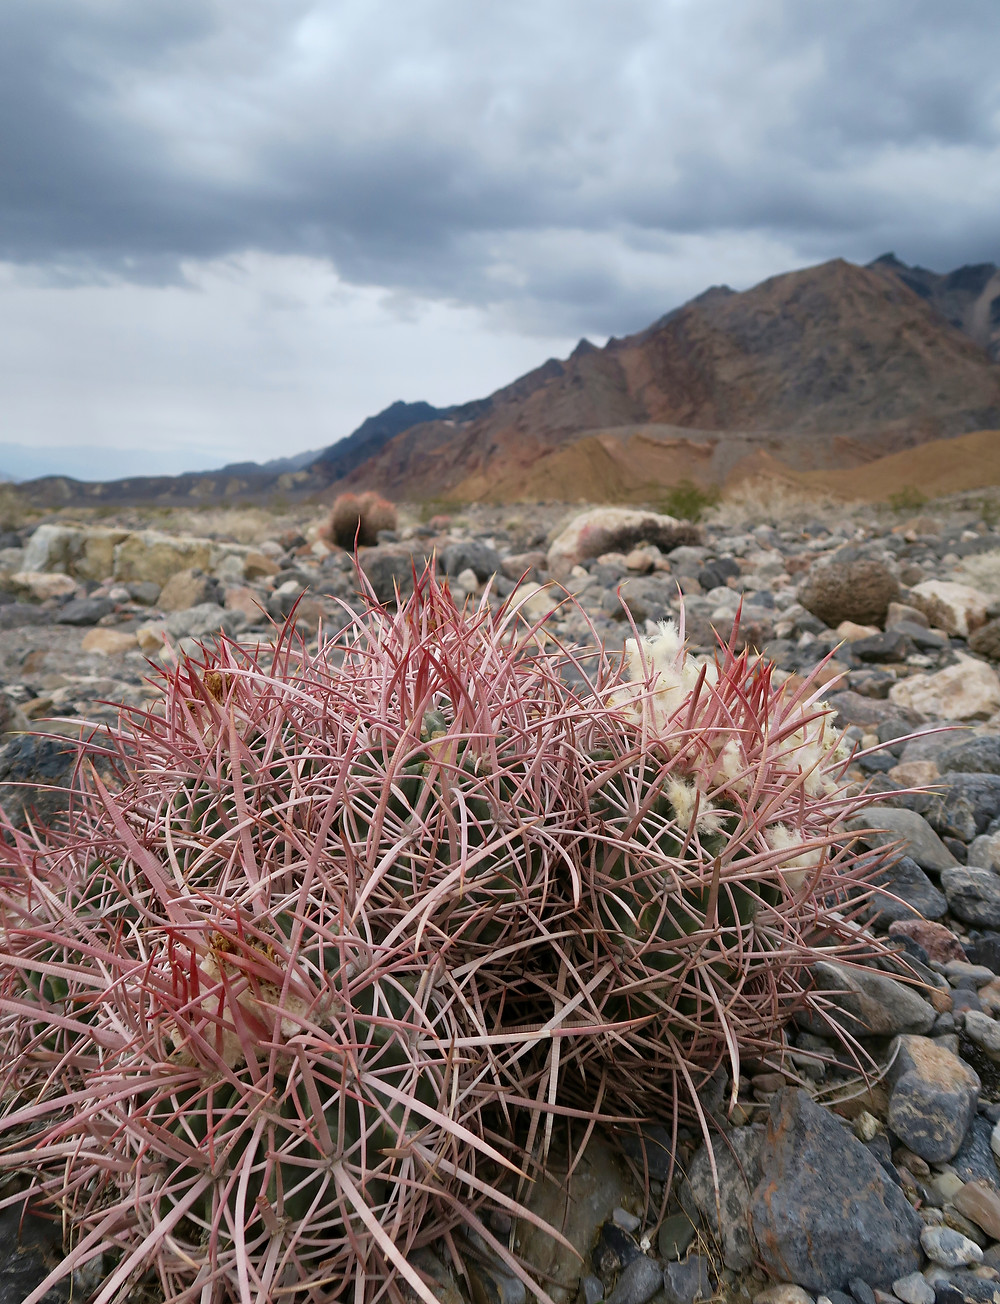 A group of small cacti with pink spikes on rocky ground. Photo by Tenley Lozano.